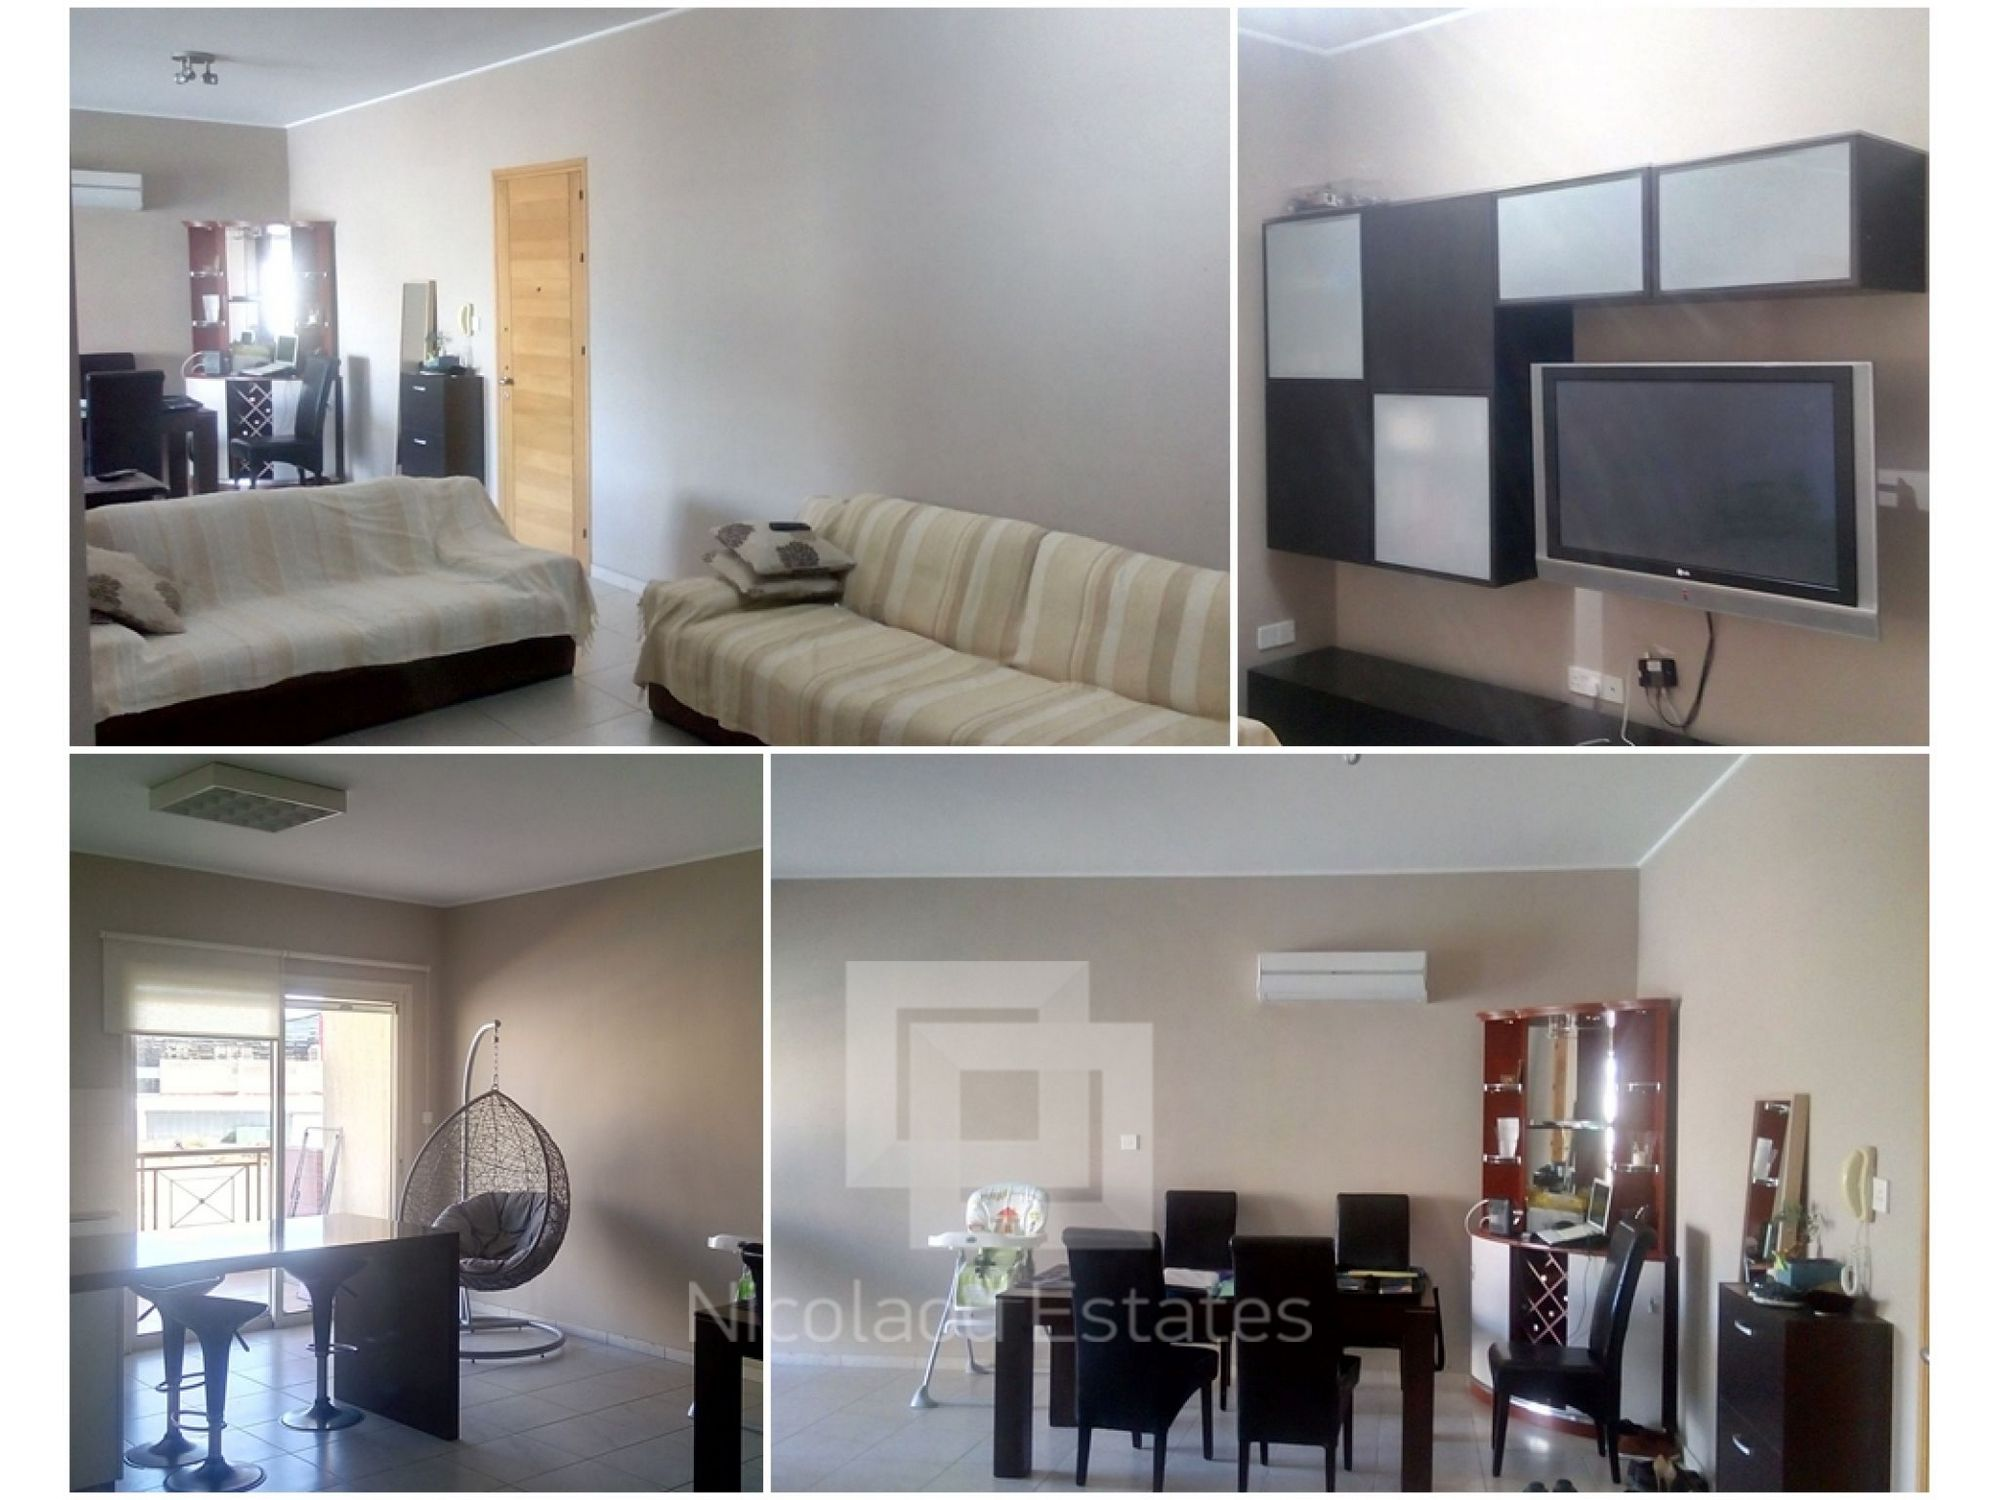 For Sale Spacious 3 Bedroom Apartment In Luxury Complex With Pool In Agios Athanasios Eur